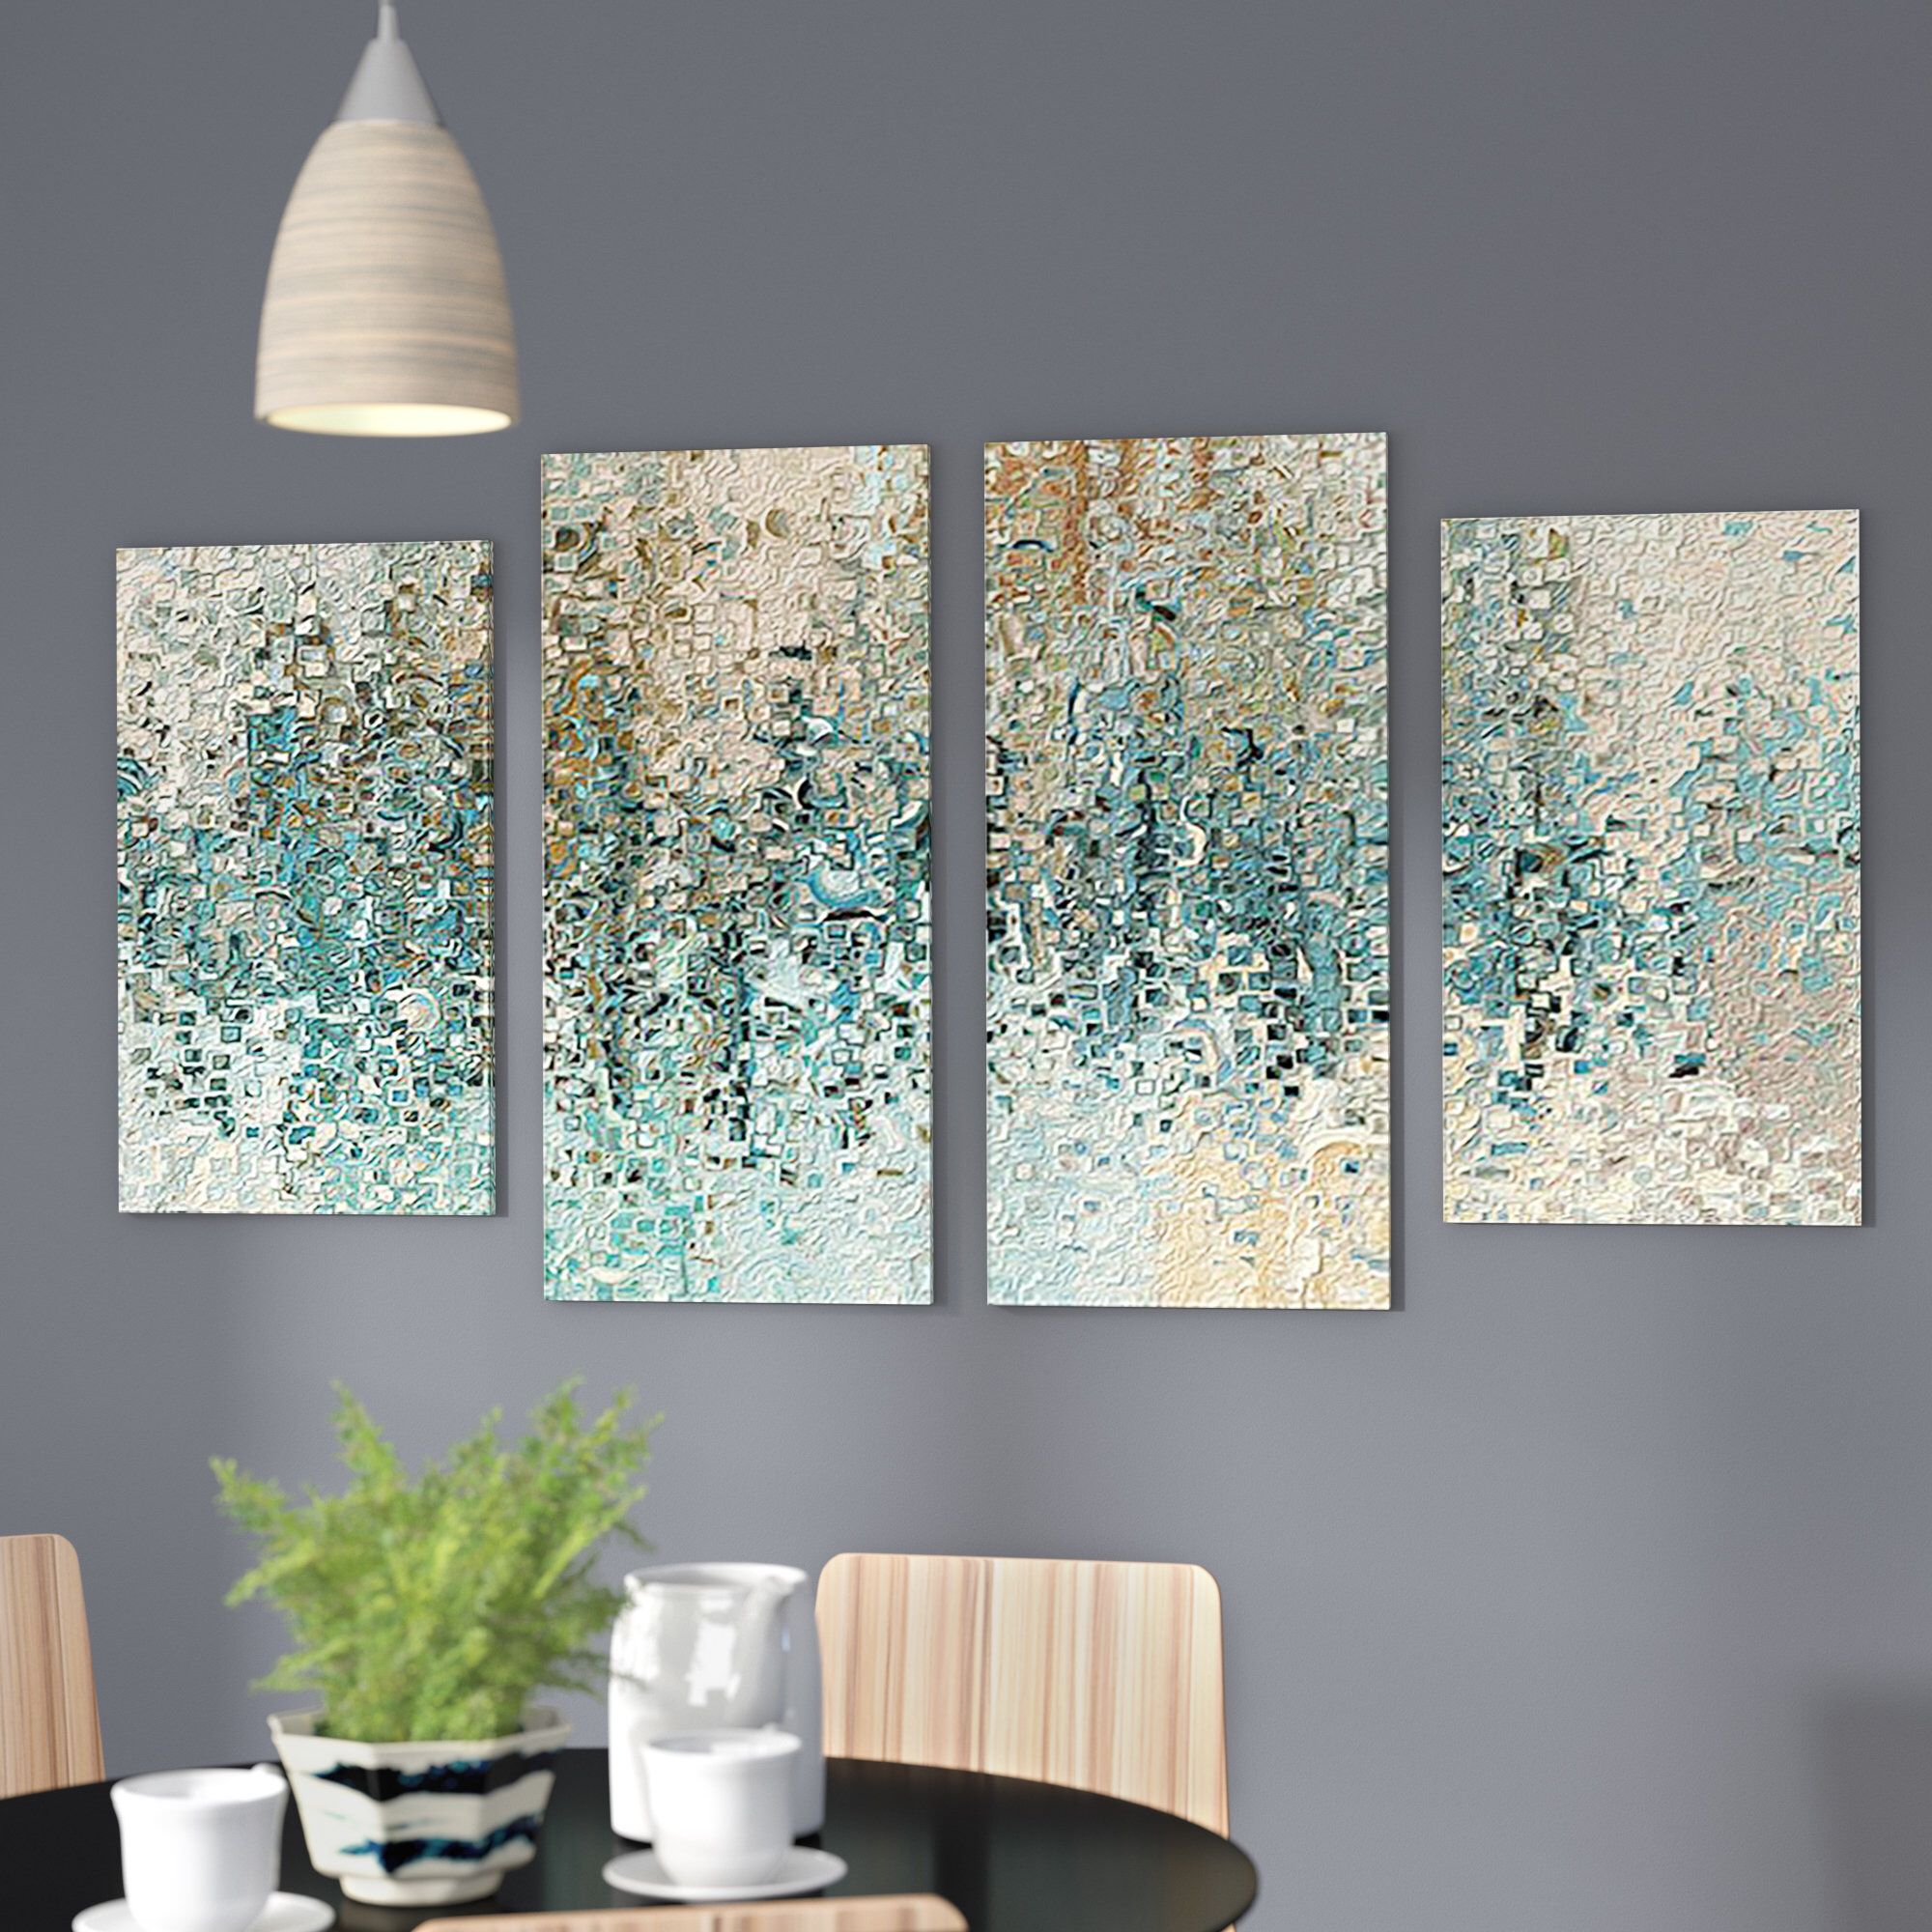 Best And Newest Wonderful World Wall Decor By Latitude Run For Revealed' 4 Piece Framed Gallery Wall Set On Canvas In 2019 (Gallery 17 of 20)